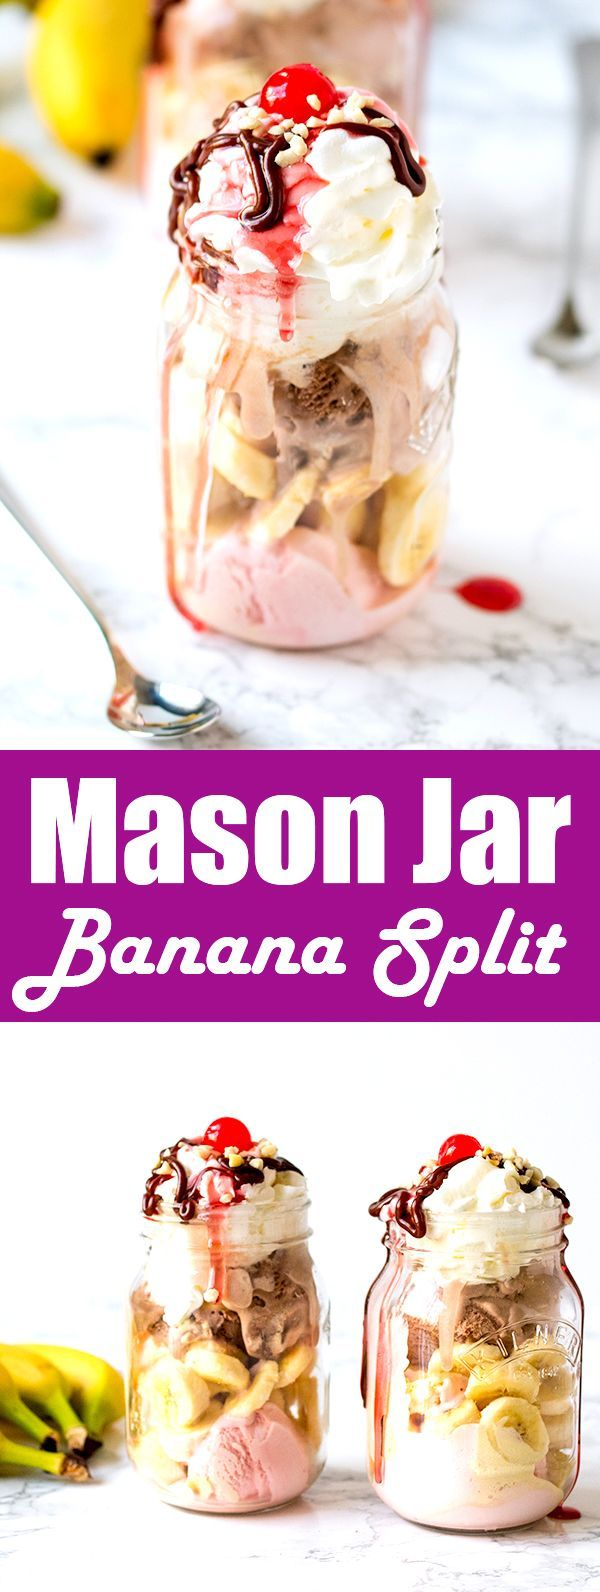 Mason Jar Banana Split! A childhood classic in but served in a JAR! The kids and adults will love this ice cream treat!